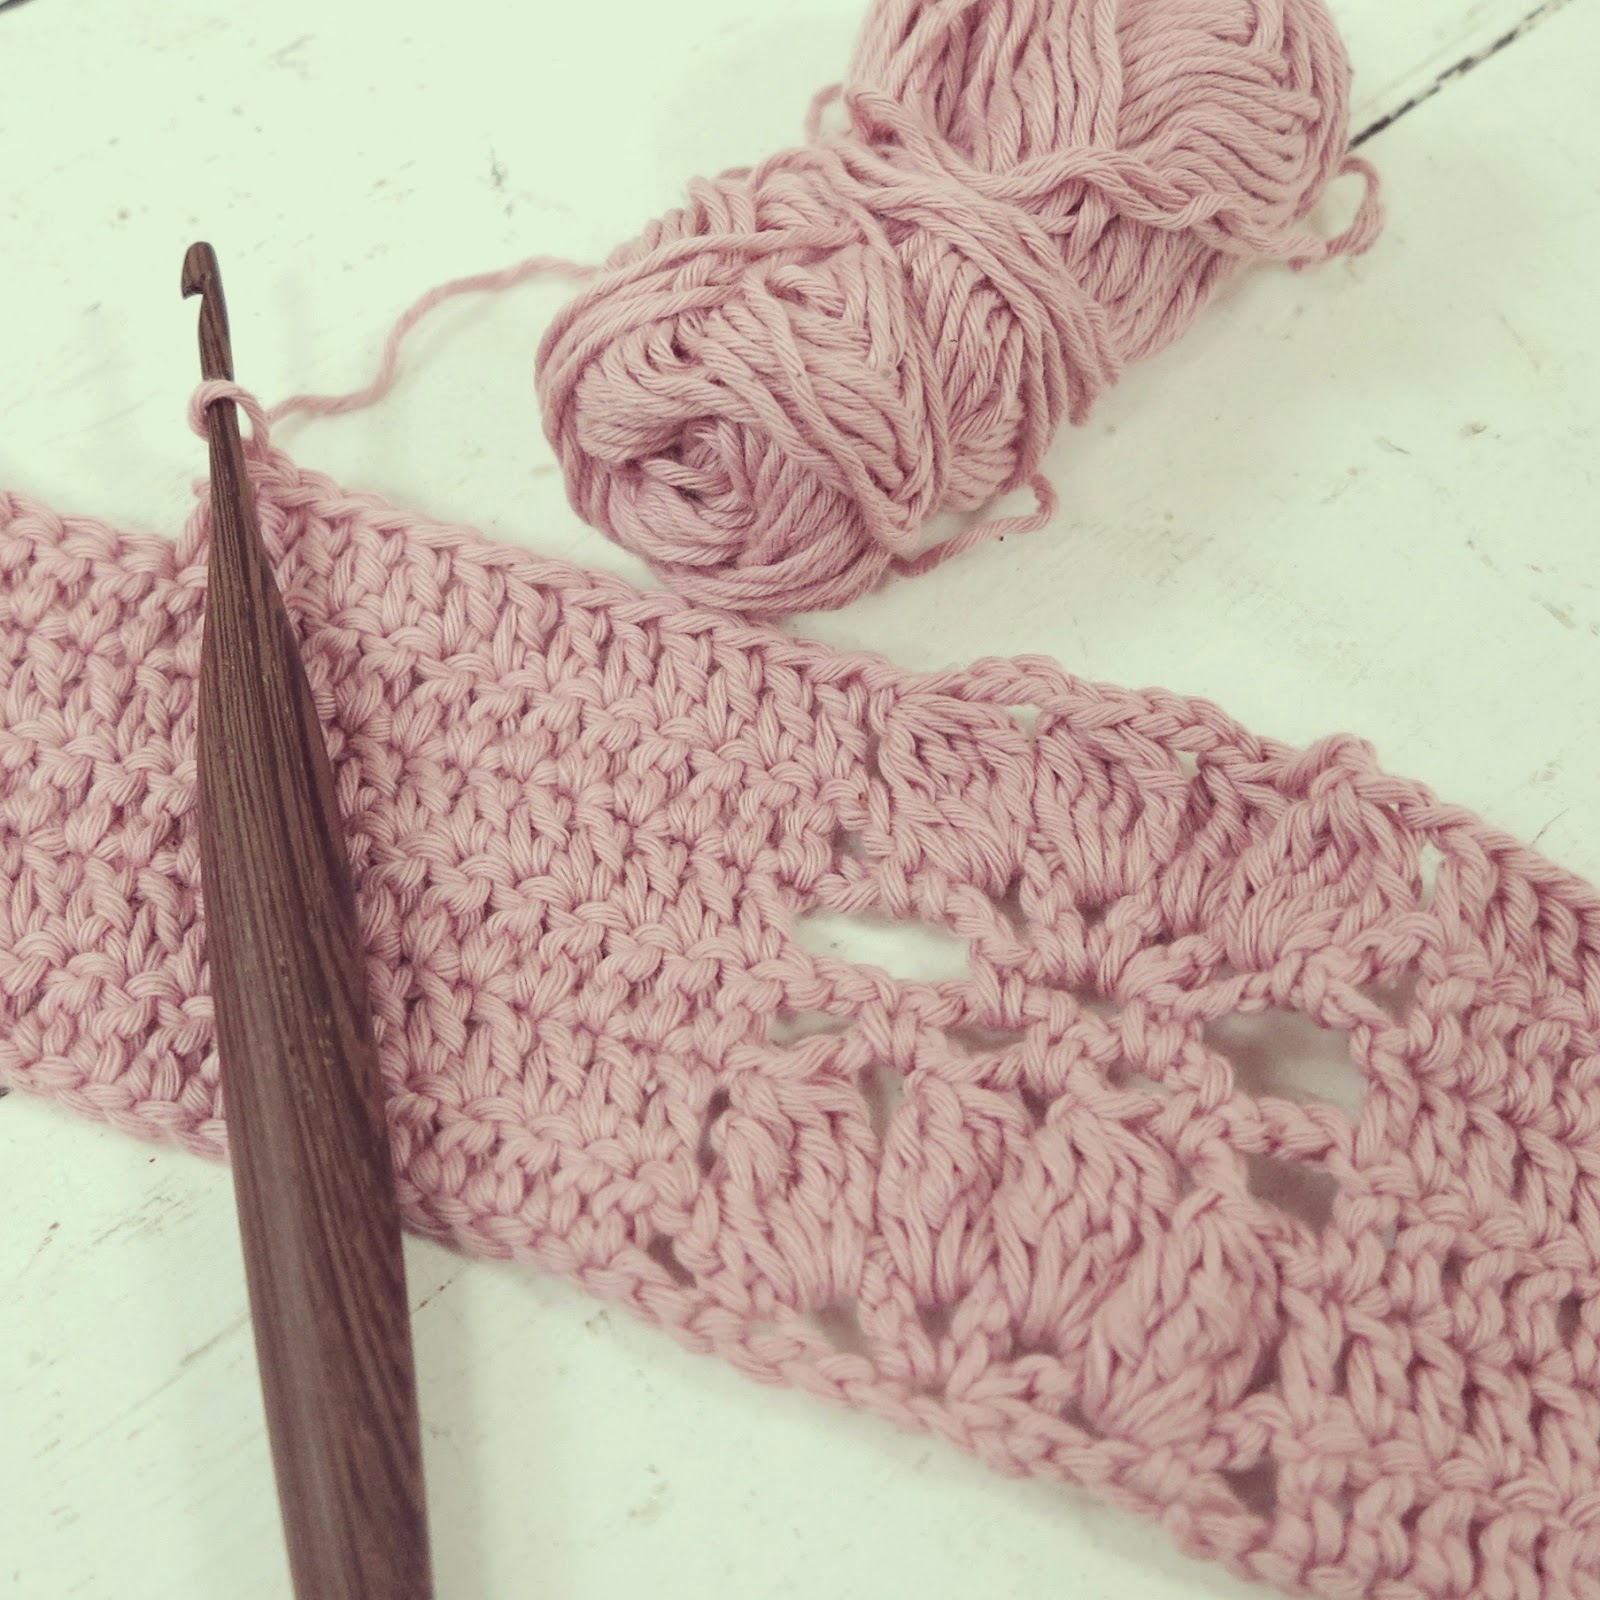 ByHaafner, crochet, sample, pink, handmade wooden crochet hook